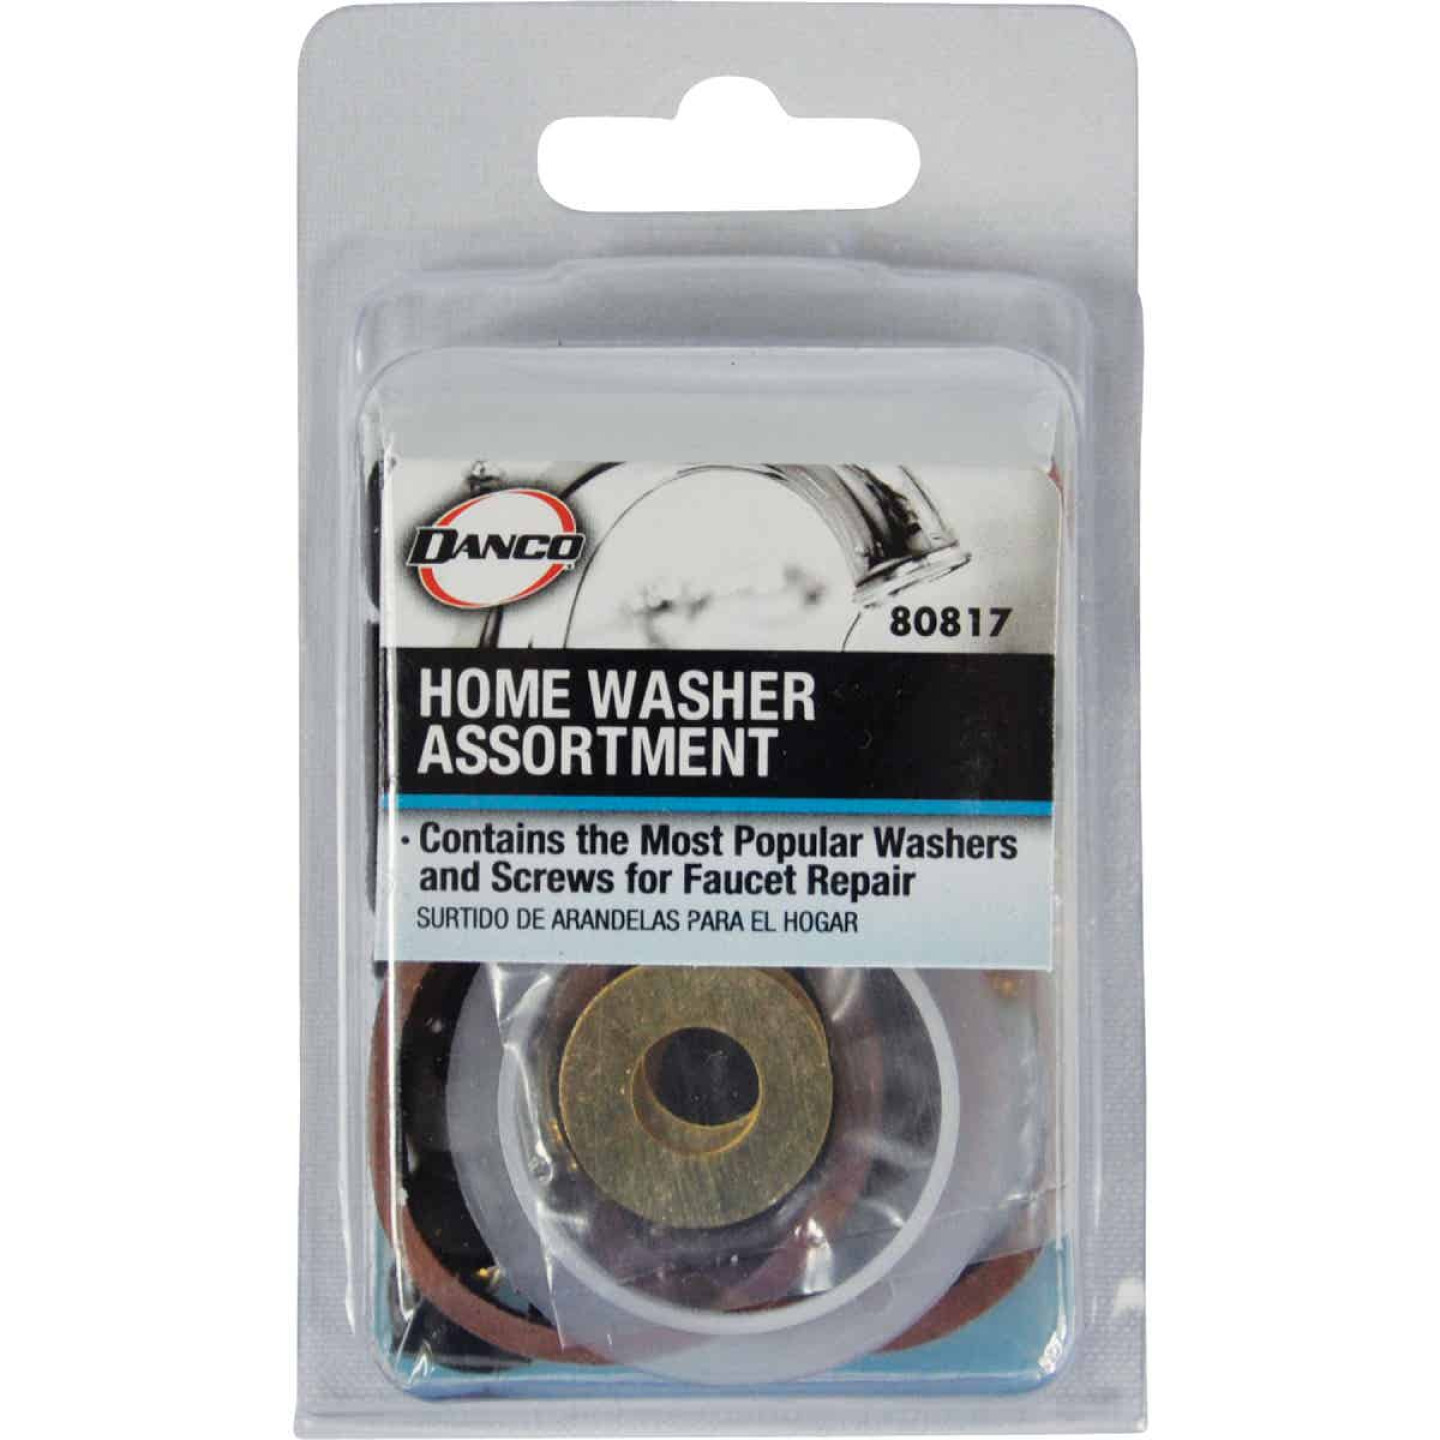 Danco Home Washer Assortment Image 2